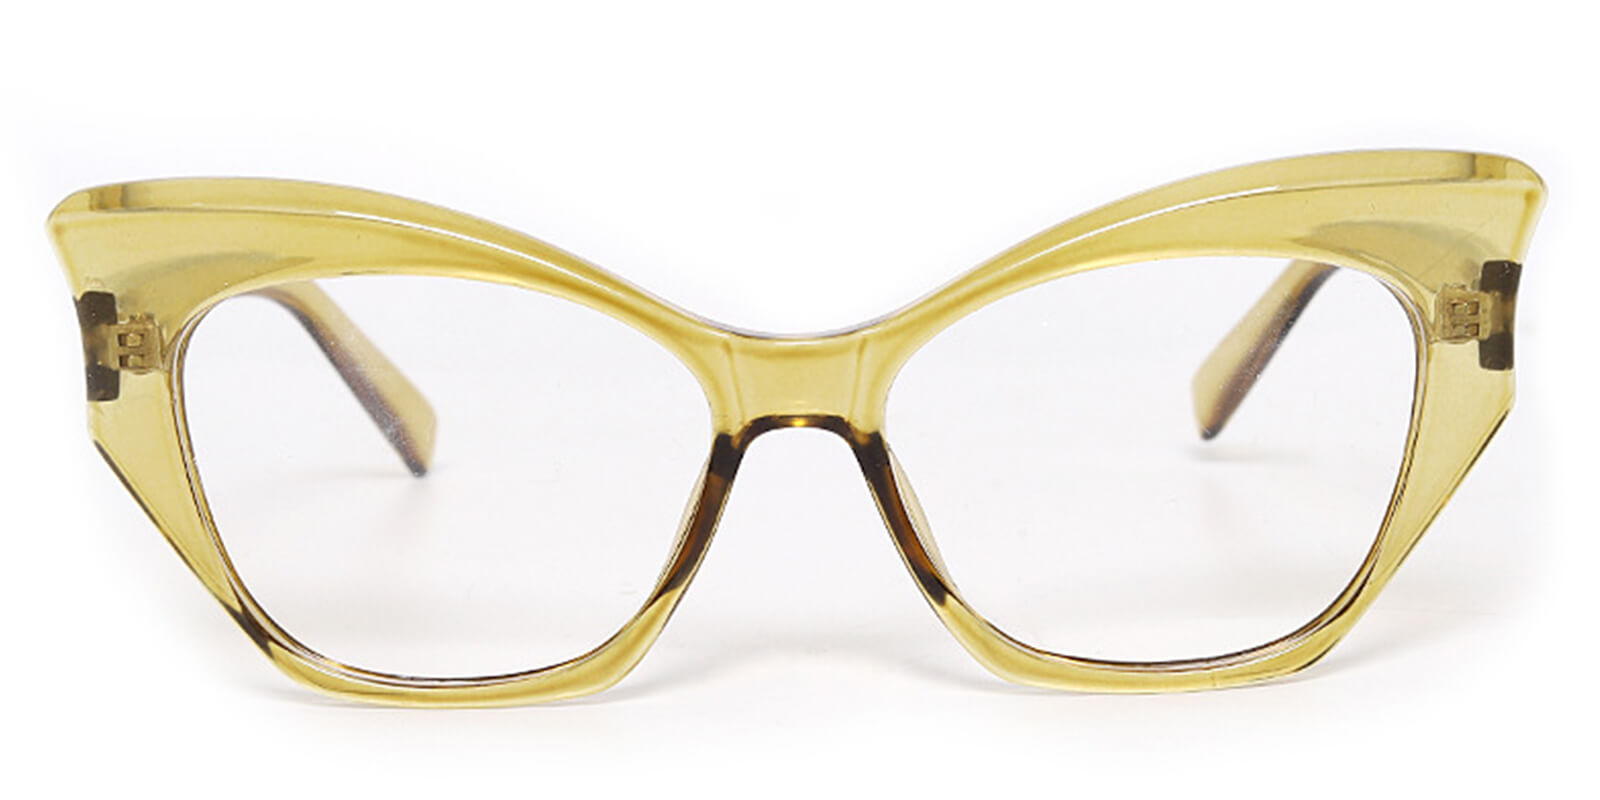 Magnet-Cat Eye Glasses with Butterfly Frame Fashion Design